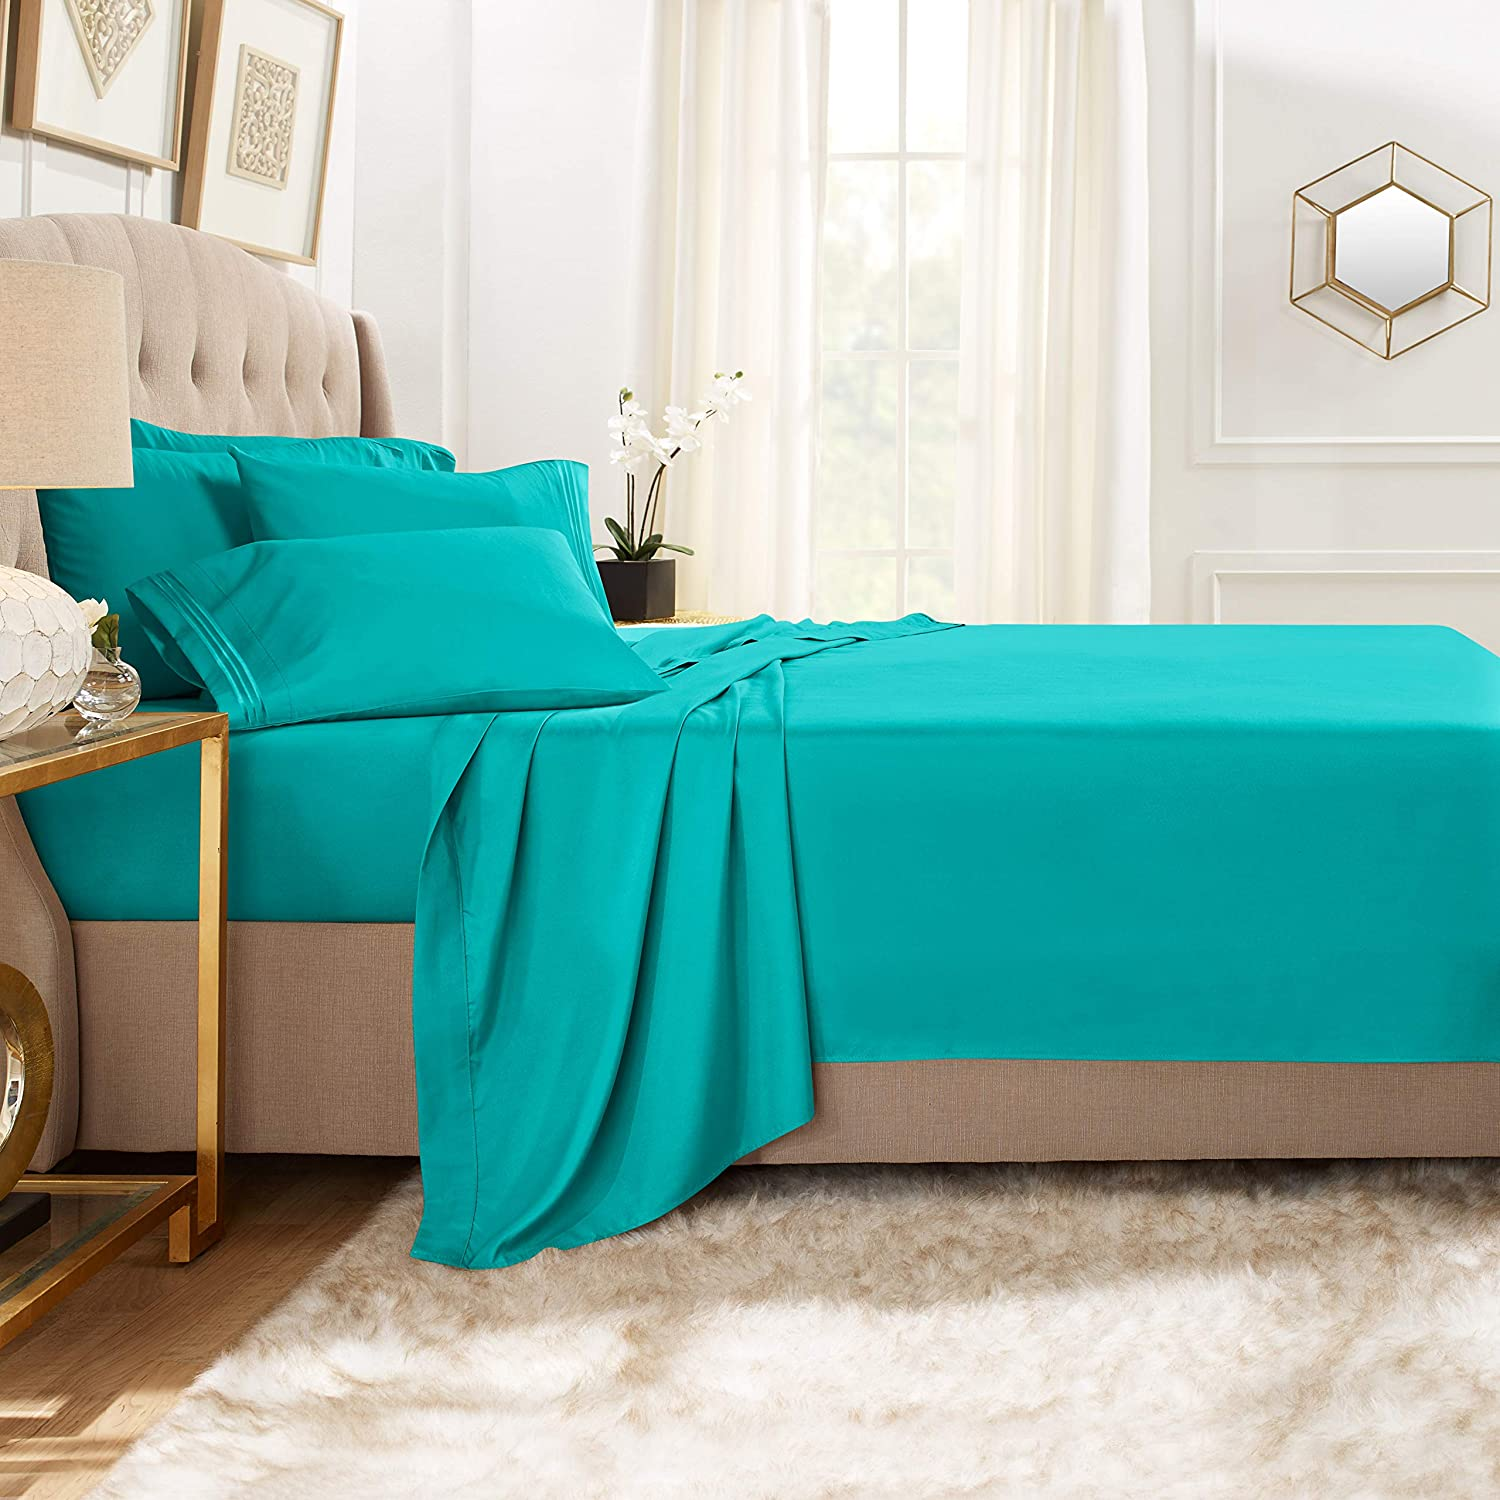 Clara Clark Bed Sheet Set Now on sale Premier Extra 18 with Pillowcases Choice